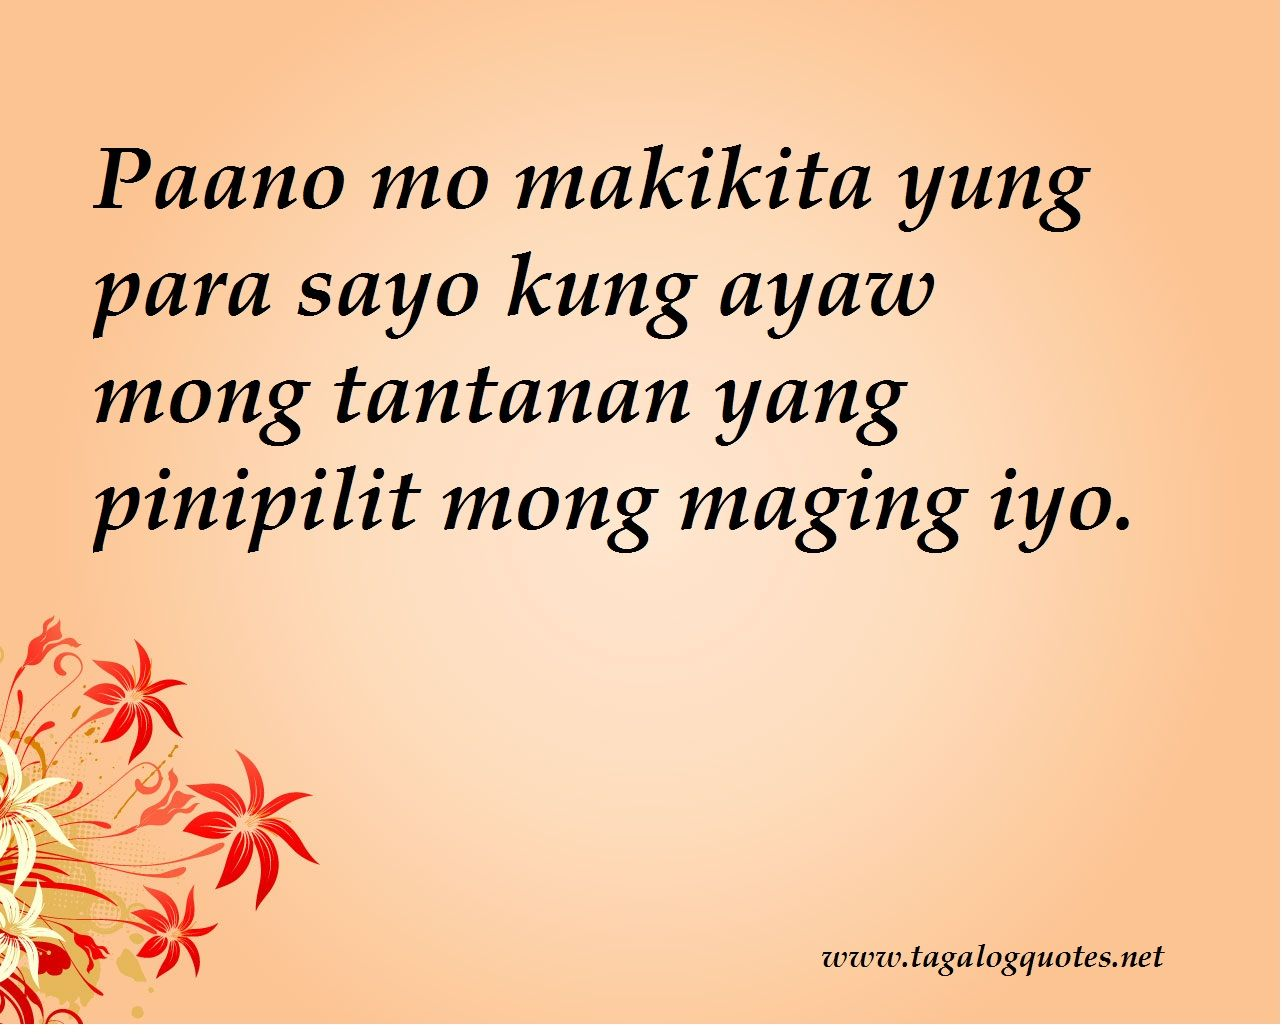 Love Quotes Tagalog Kabit Quotes Love Quotes Crush Quotes Love Quotes For Crush